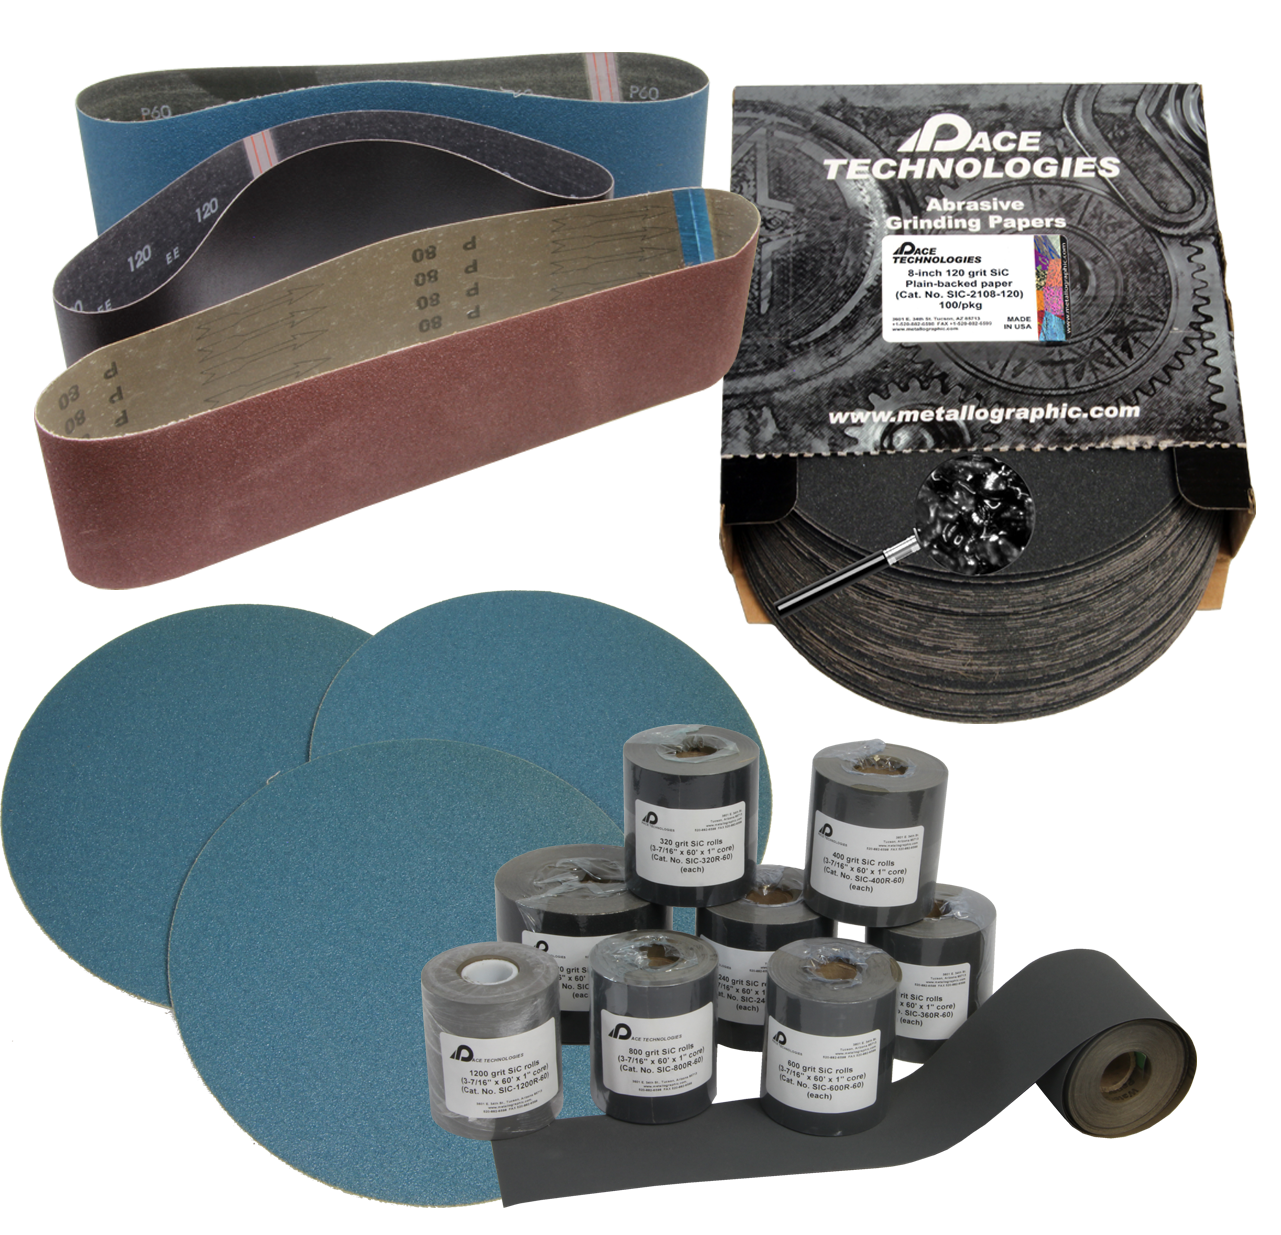 Metallographic Abrasive Grinding Consumables